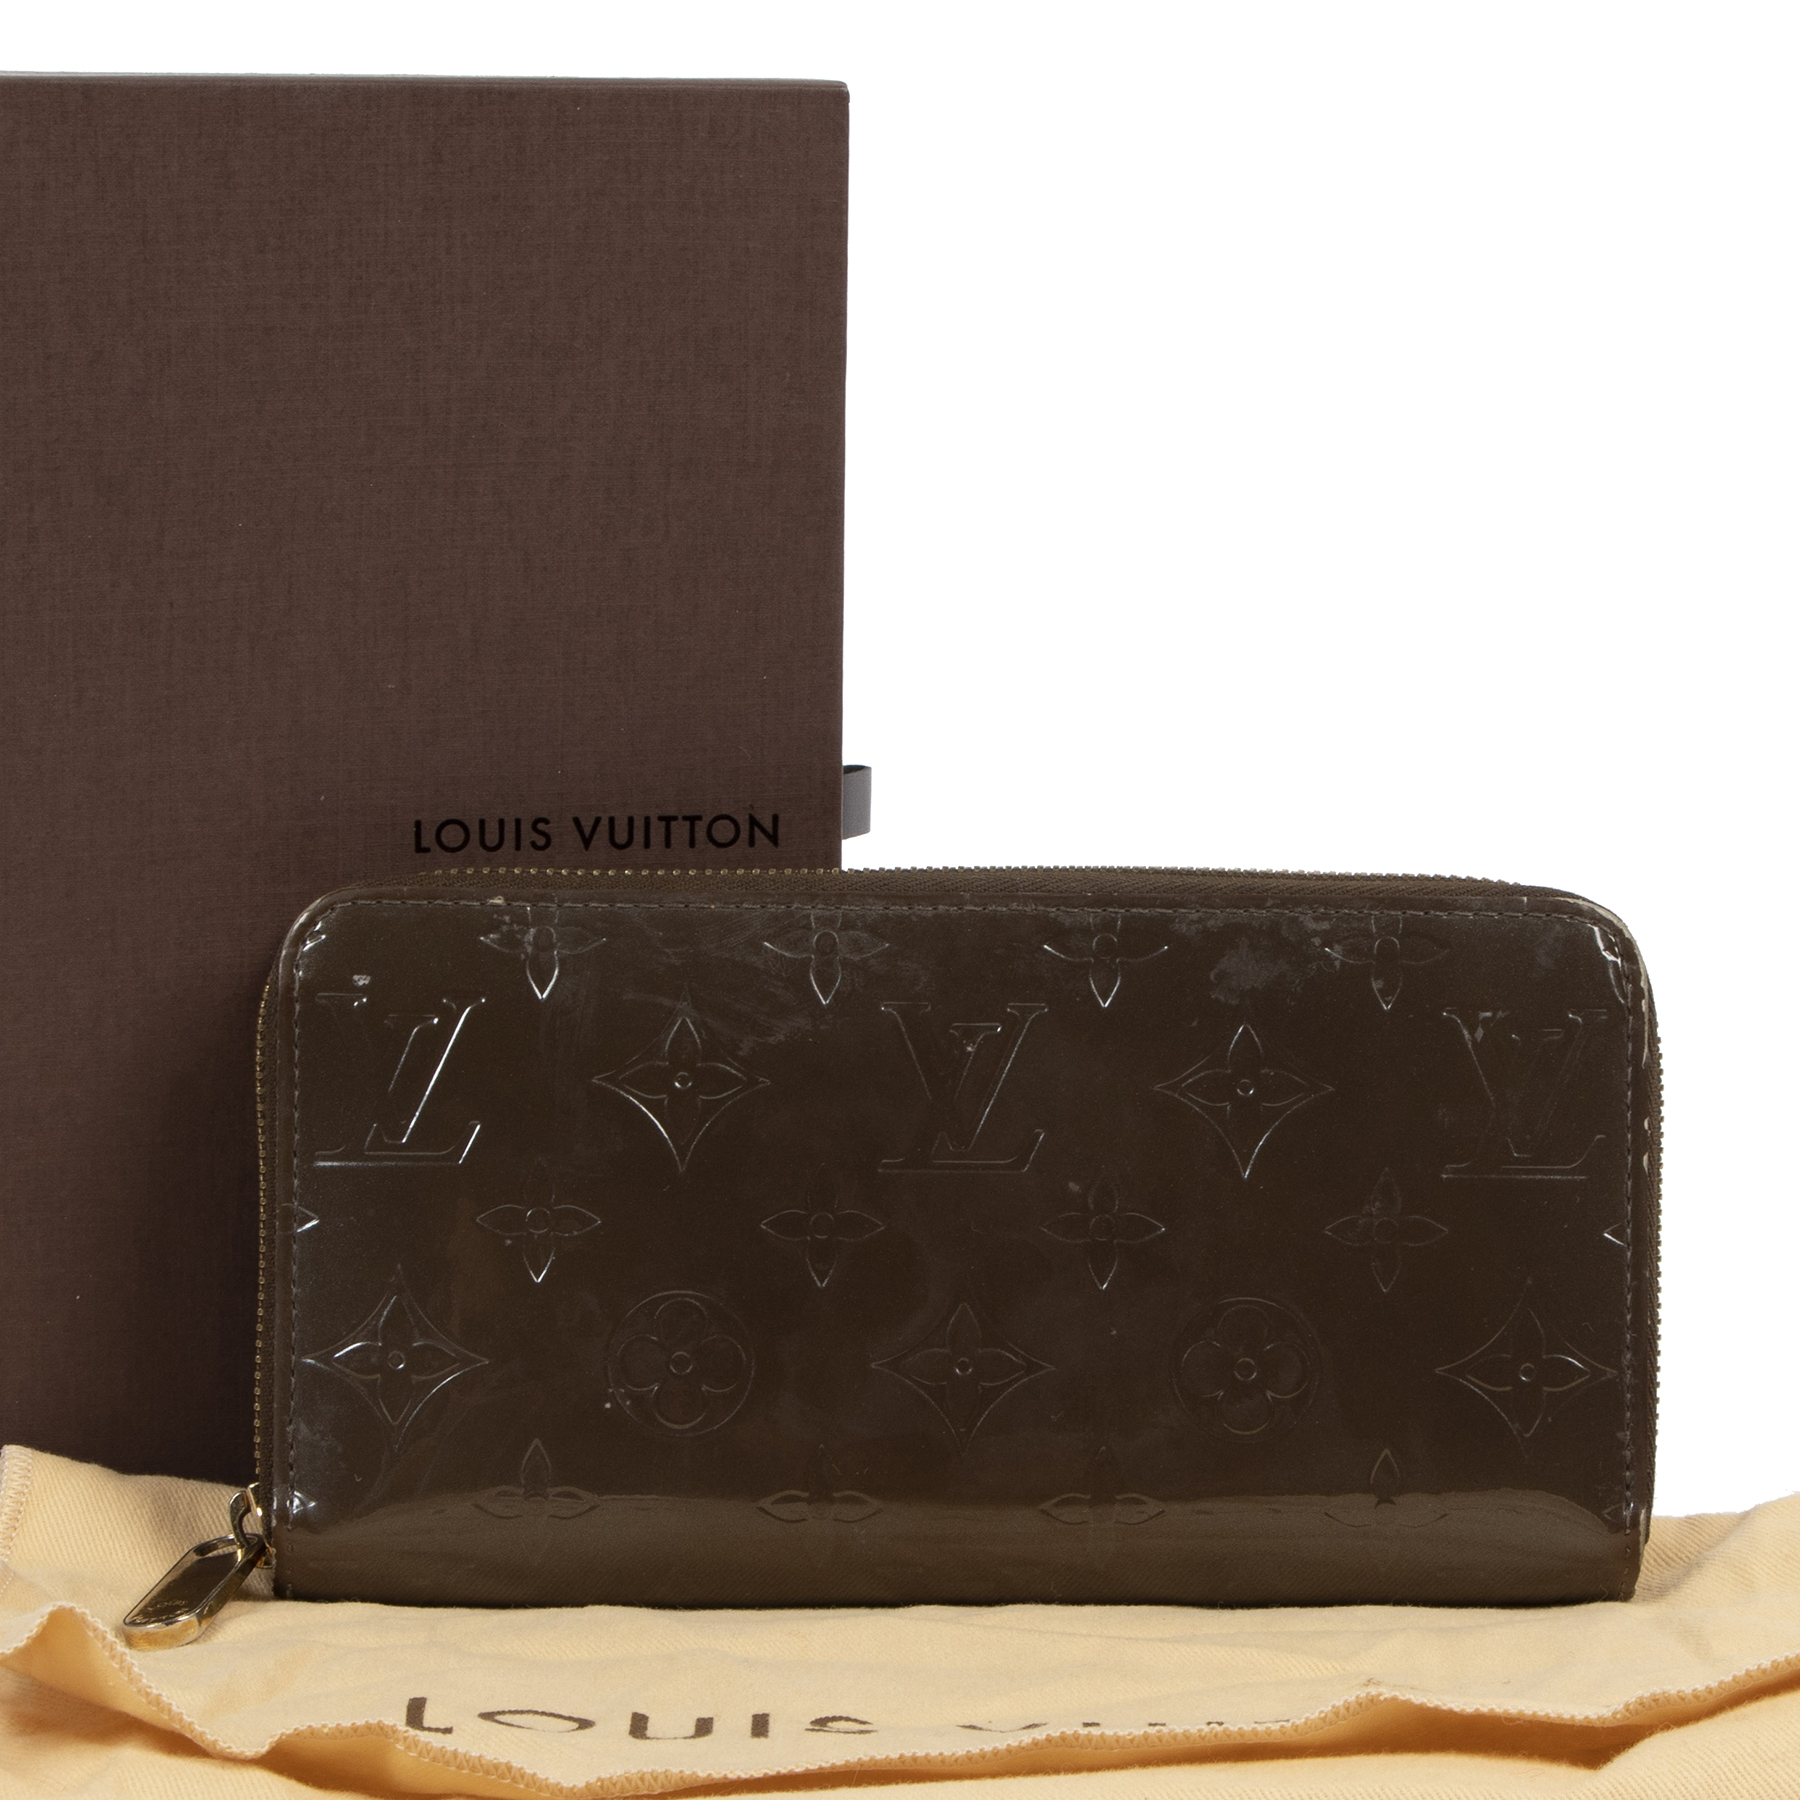 Authentic second-hand vintage Louis Vuitton Brown Vernis Zippy Wallet buy online webshop LabelLOV